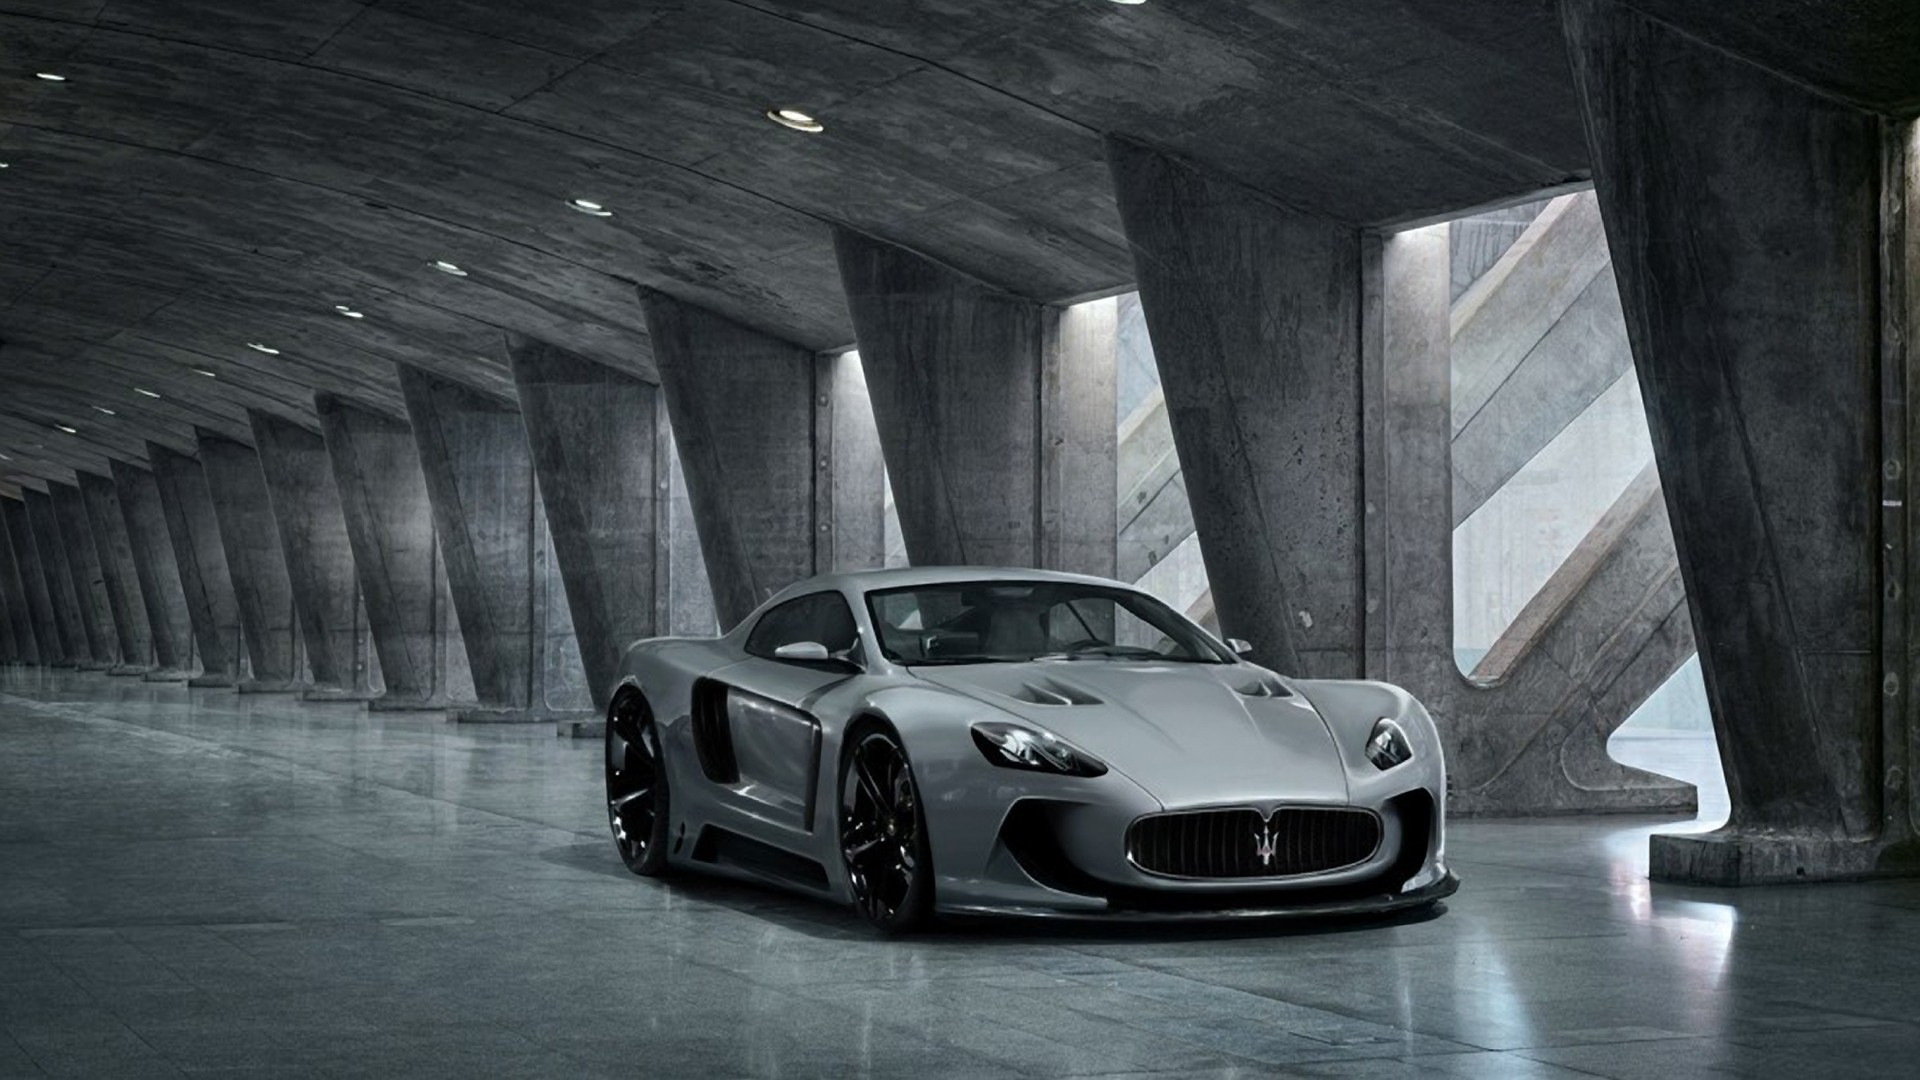 cars Maserati vehicles concept HD Wallpaper